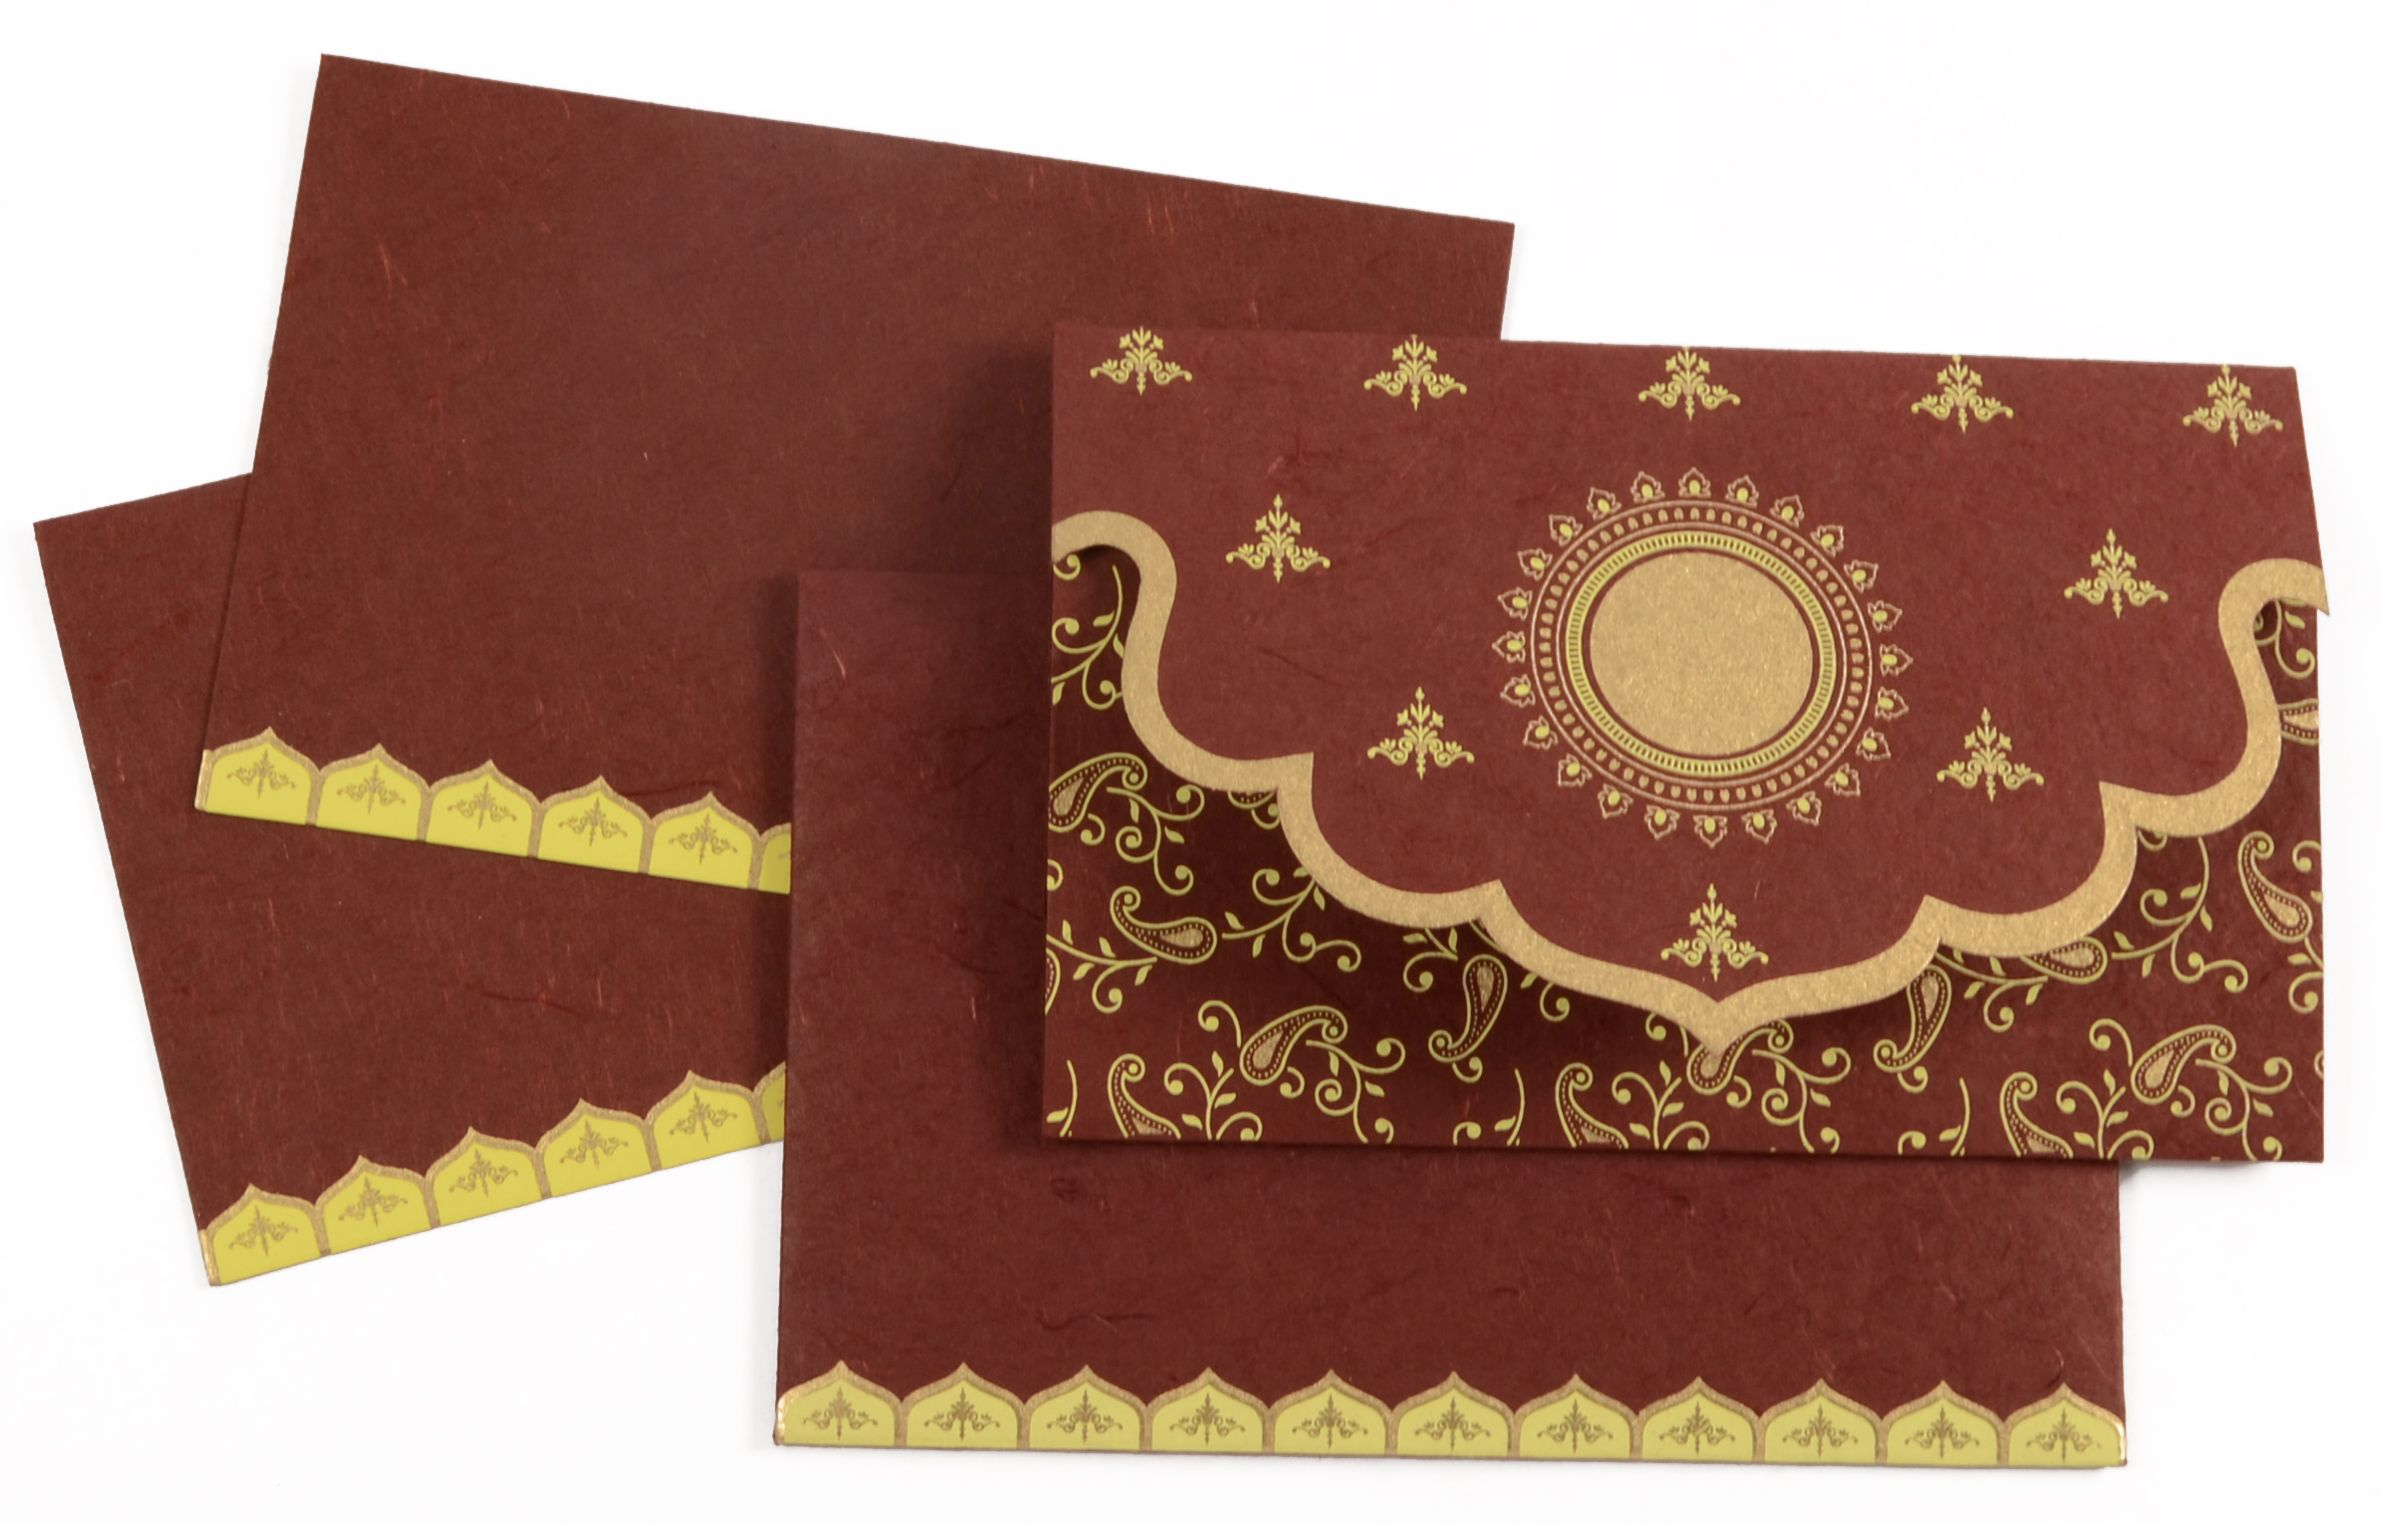 Indian Wedding Invitation Cards Designs Indian Wedding Invitation – Indian Wedding Card Design